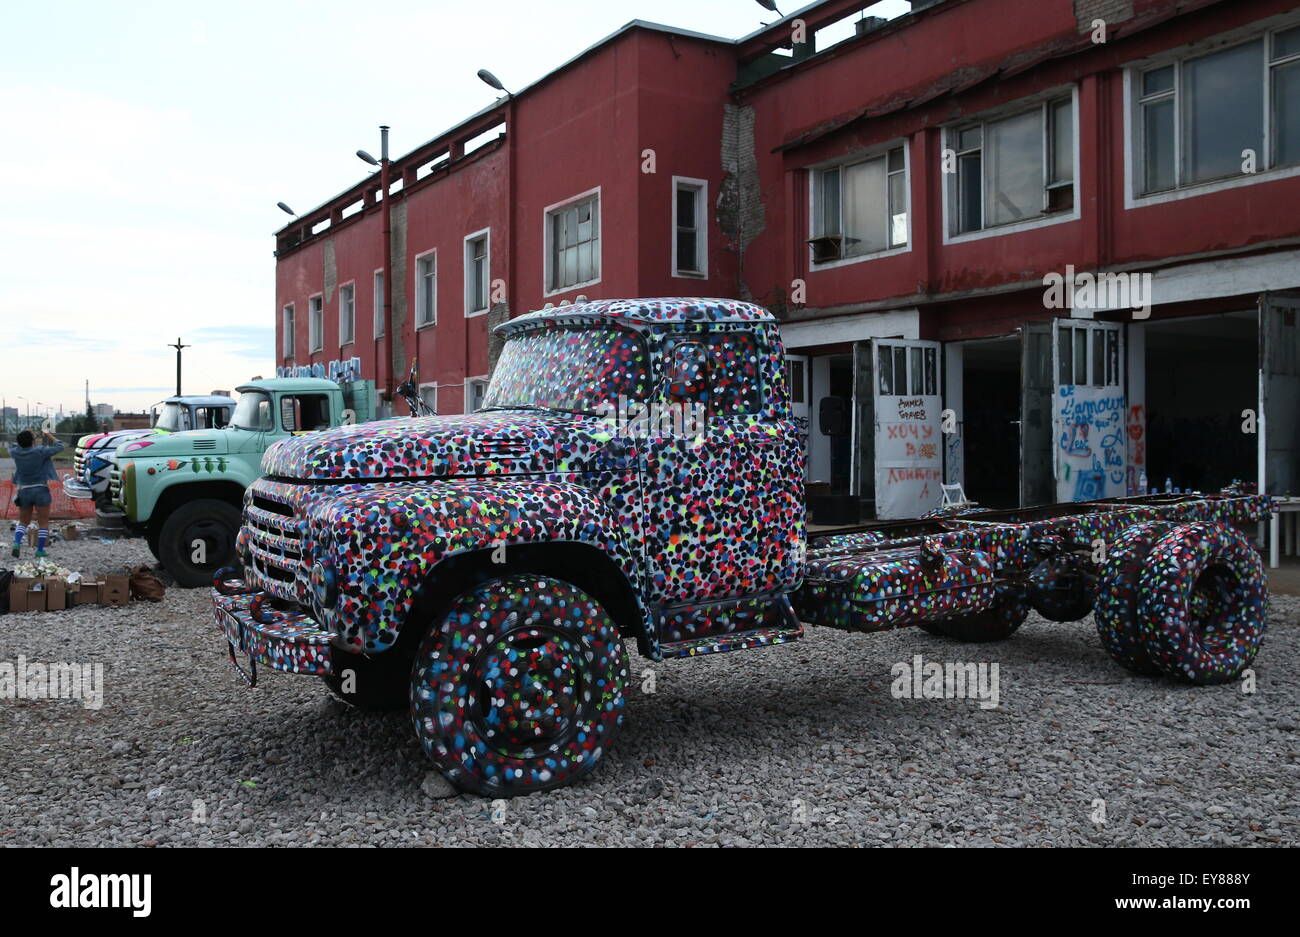 Truck Zil Stock Photos & Truck Zil Stock Images - Page 2 - Alamy